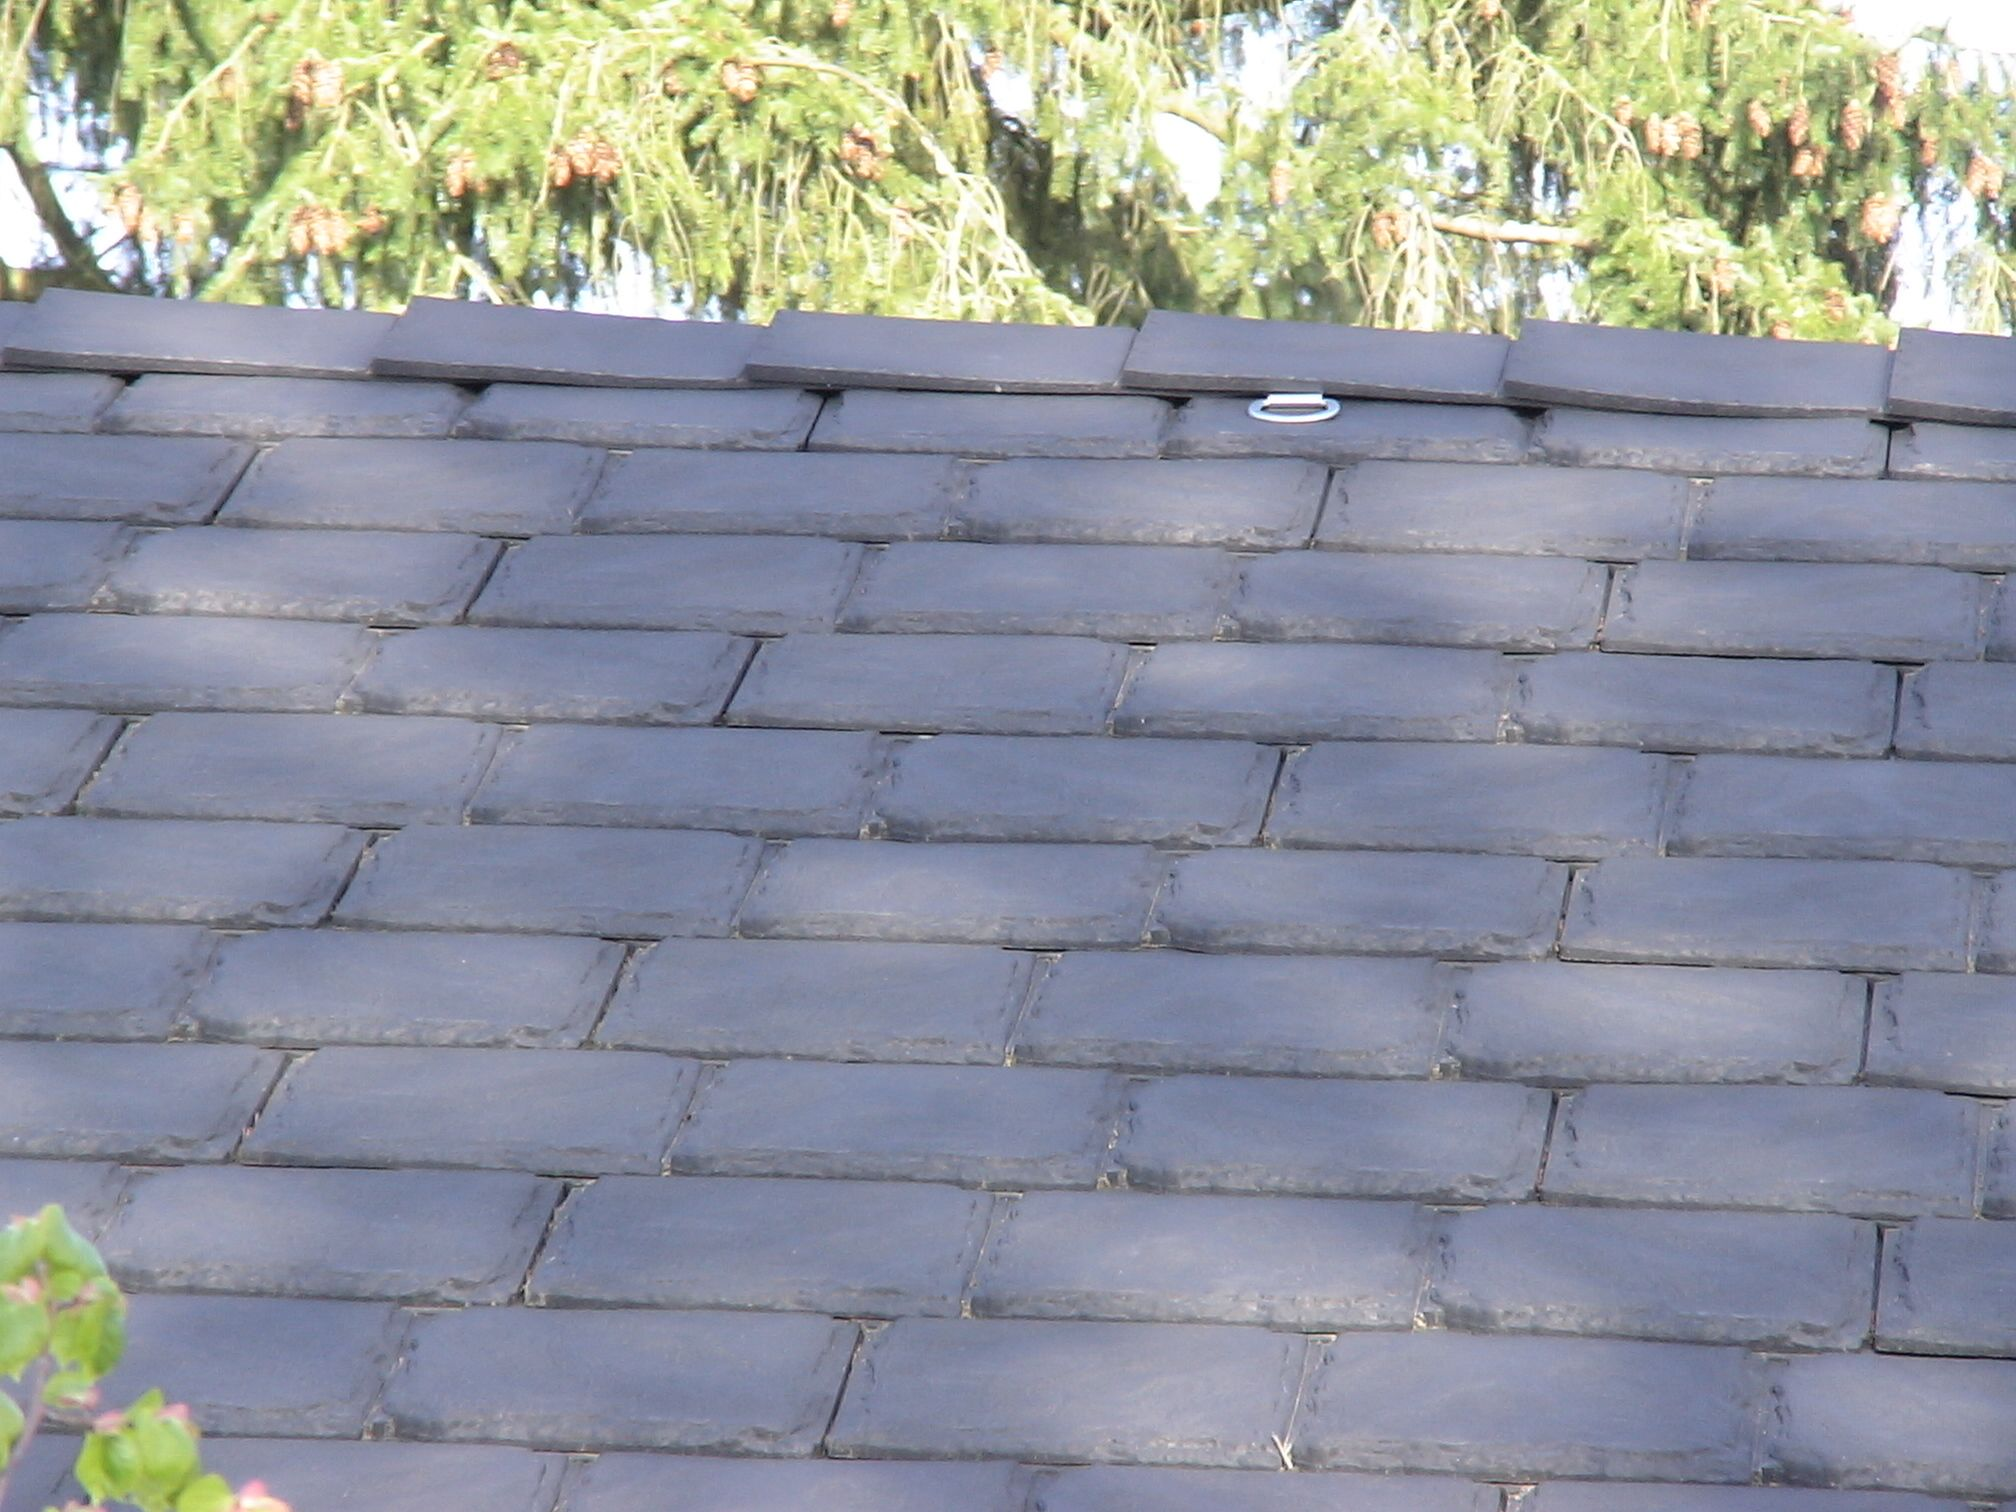 Retrofit Permanent Roof Safety Anchor Installed On A Simulated Slate Rubber Roof Patio Outdoor Decor Installation